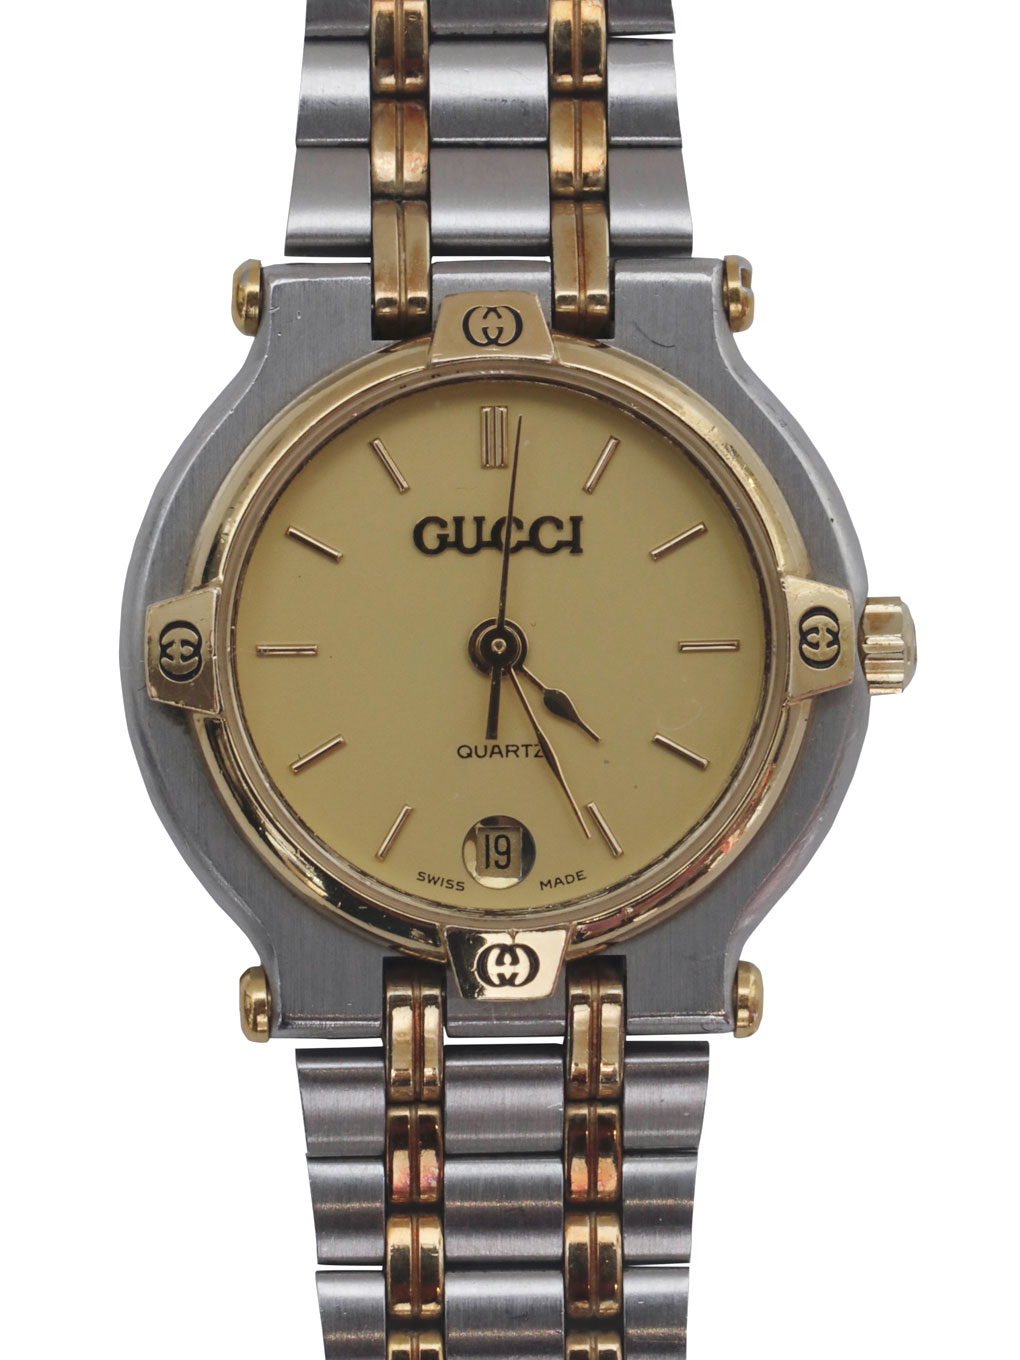 GUCCI 9000L WATCH